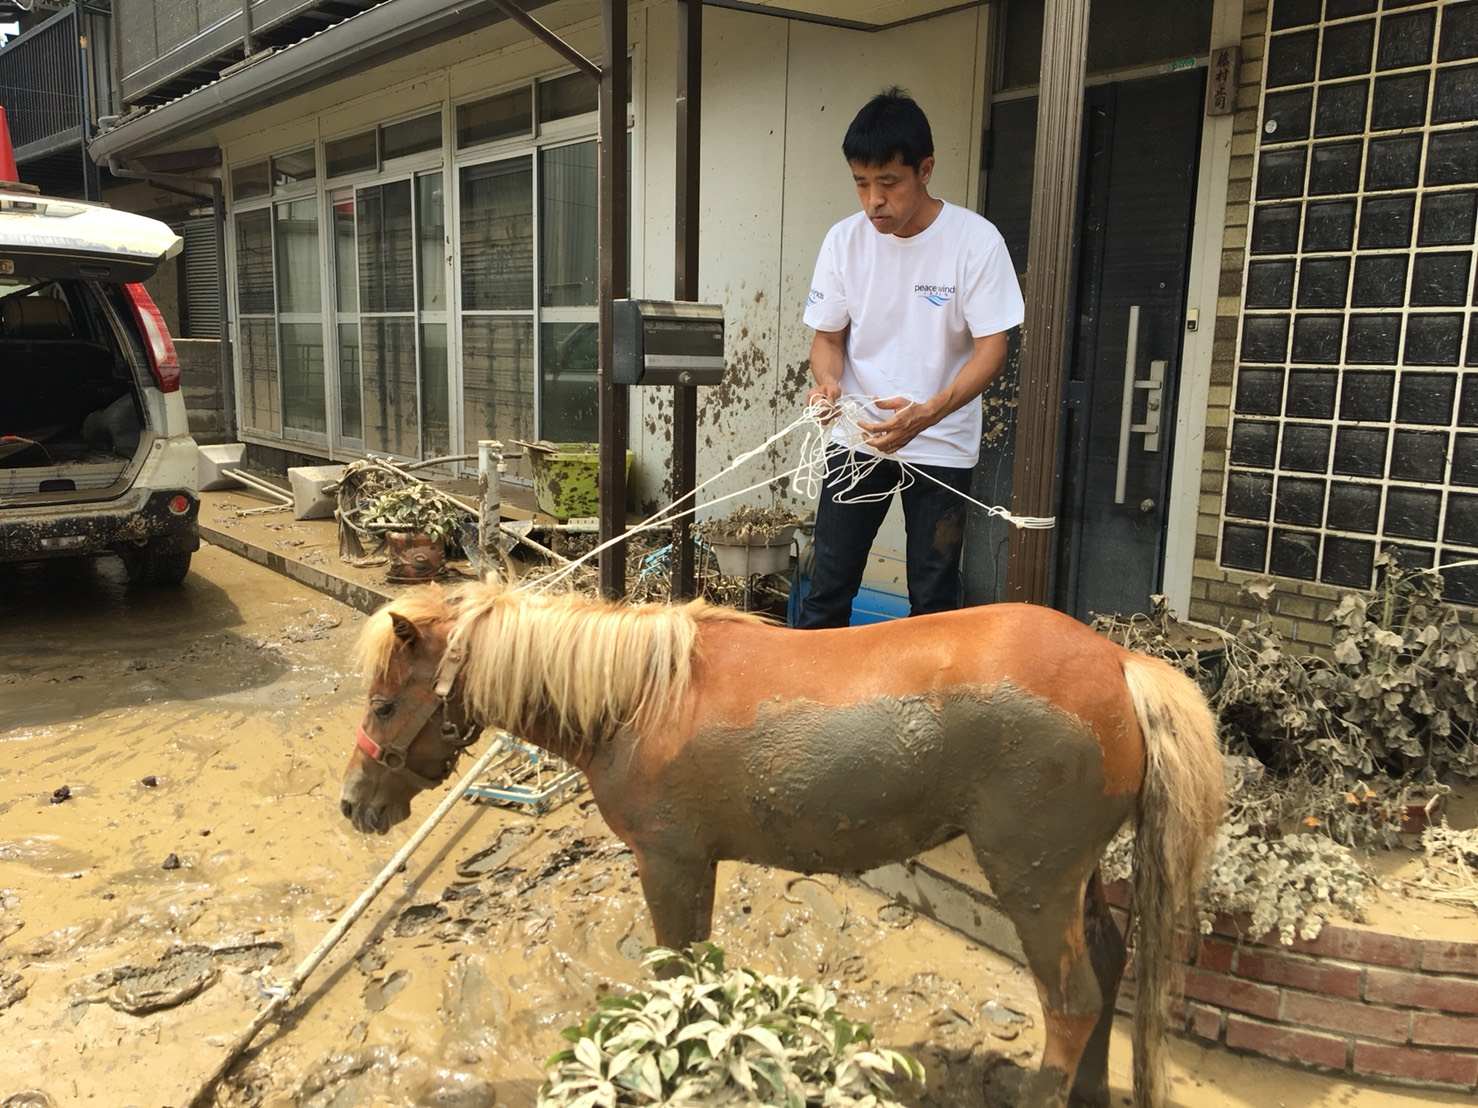 Staff of Peace Winds Japan take care of Leaf, a horse who fell from the roof of a home while crews attempted to rescue her.   COURTESTY OF PEACE WINDS JAPAN, ASIA PACIFIC ALLIANCE JAPAN AND CIVIC FORCE